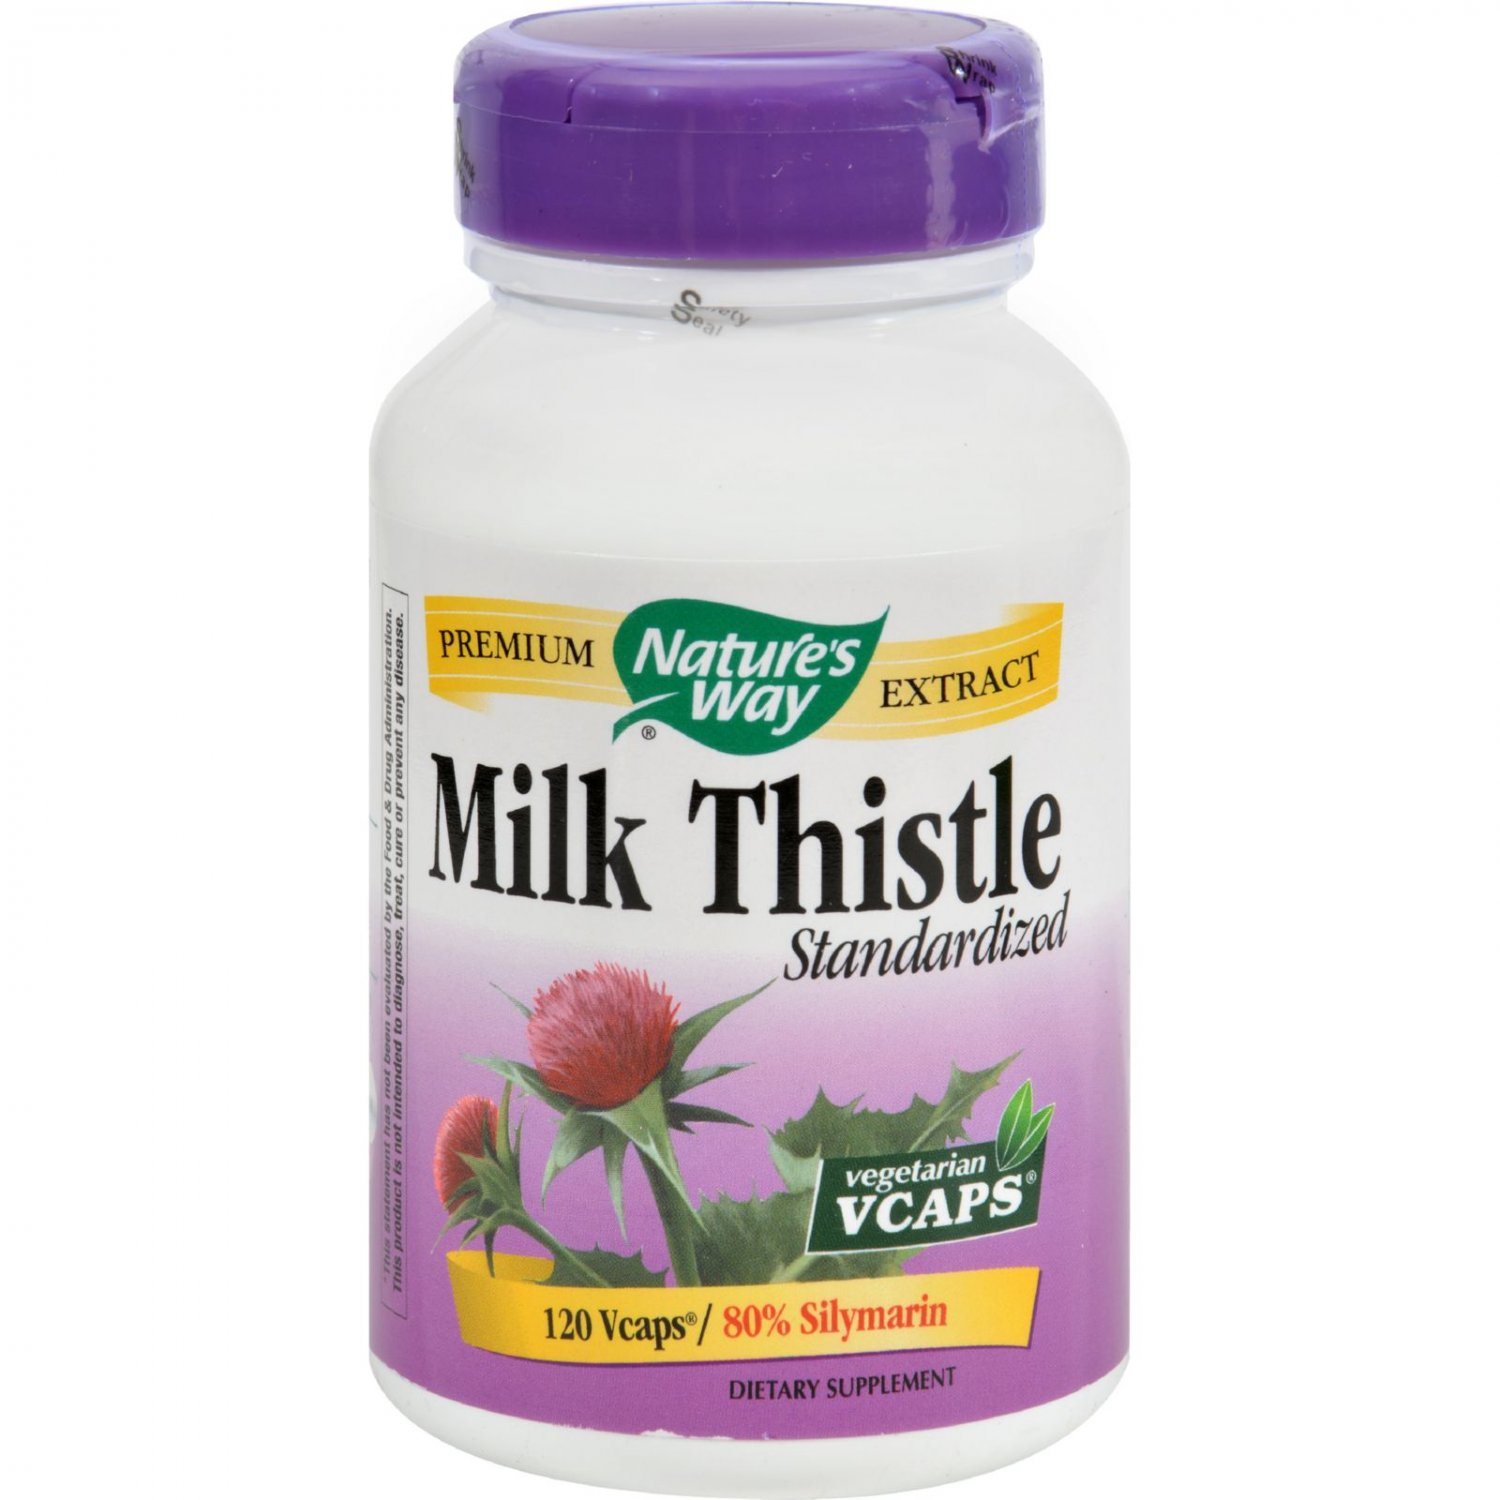 Nature's Way Milk Thistle Standardized - 120 Vegetarian Capsules